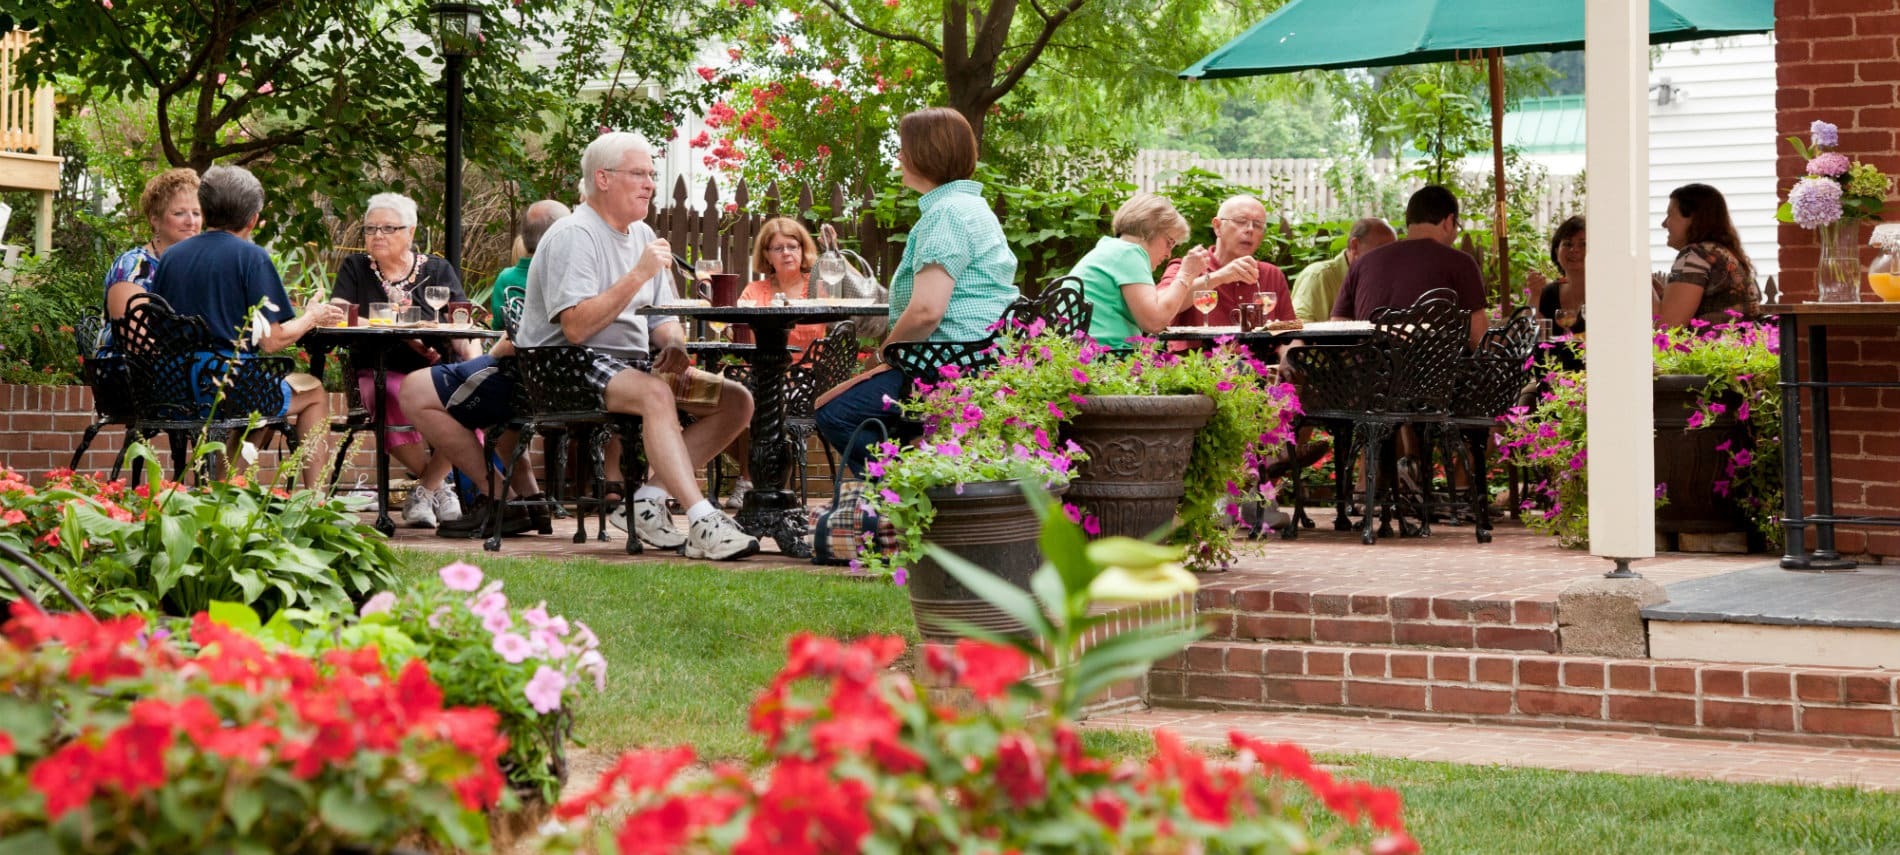 Guests sitting outside at patio tables smiling and eating amidst a grassy lawn and bright flowers